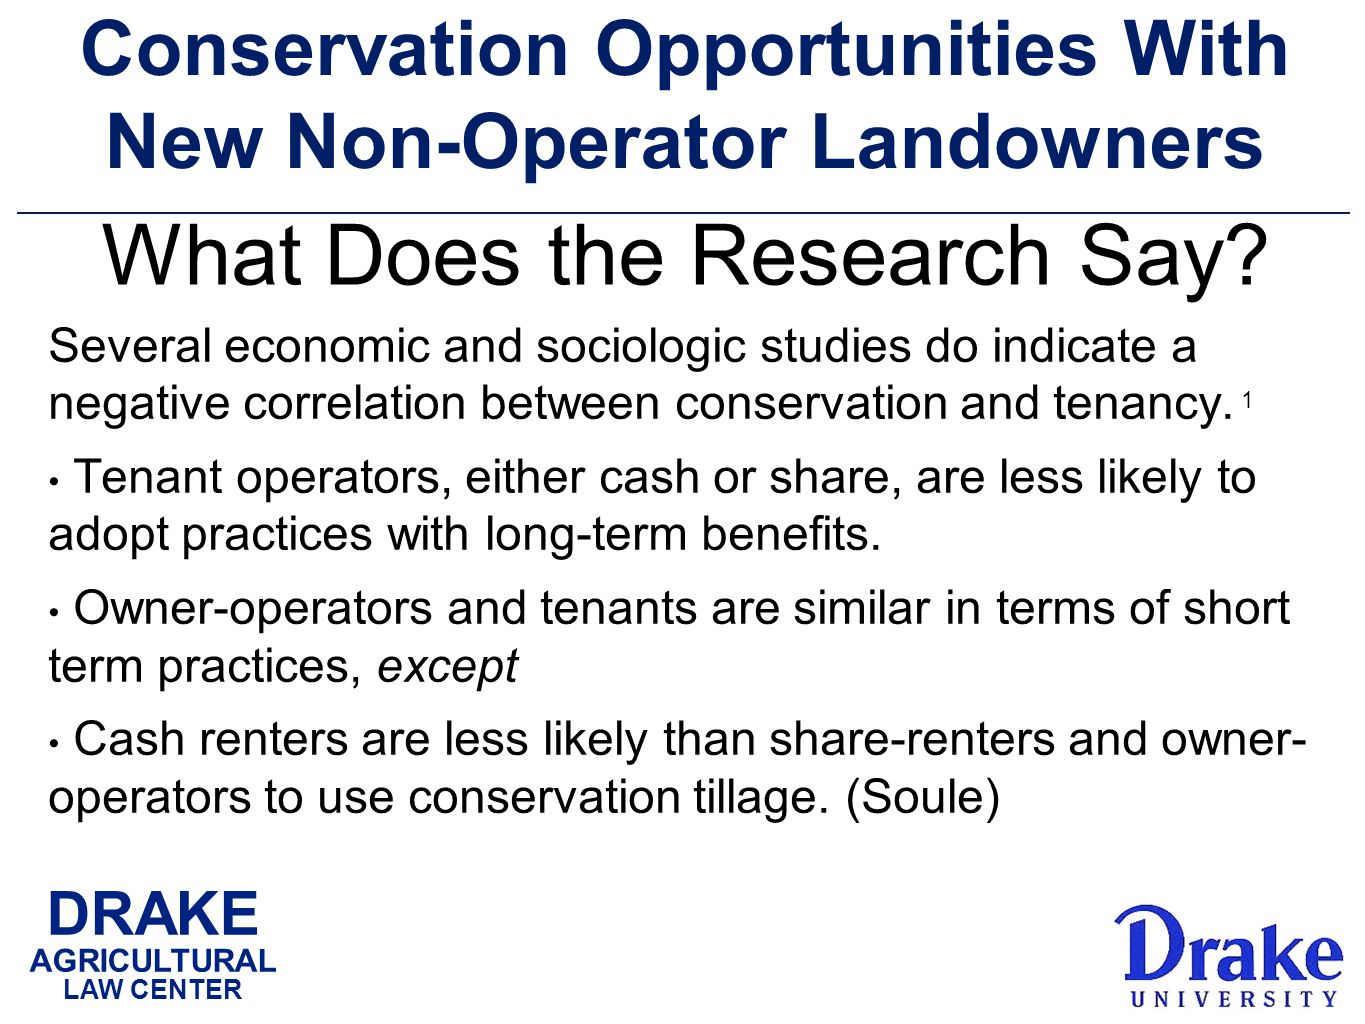 DRAKE AGRICULTURAL LAW CENTER Conservation Opportunities With New Non-Operator Landowners Several economic and sociologic studies do indicate a negative correlation between conservation and tenancy.